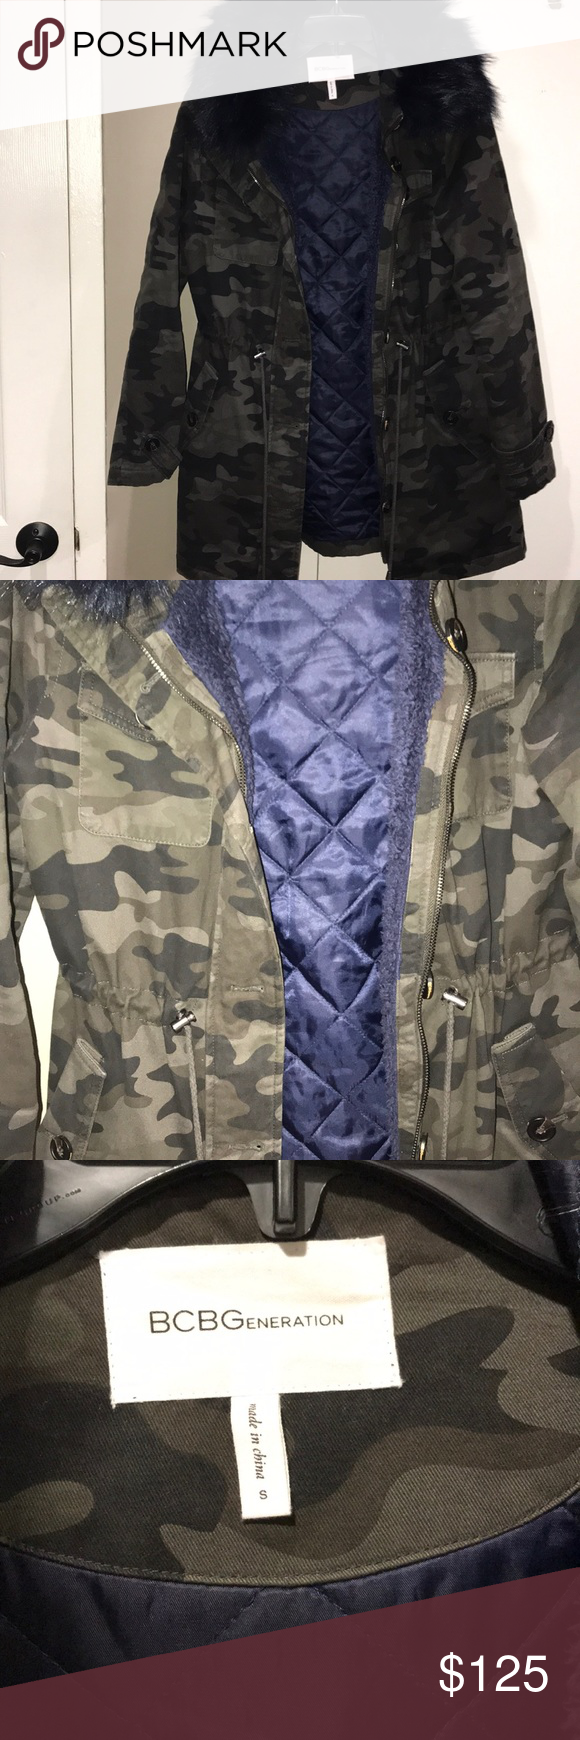 """807e19ef9e233 BCBG Camo Print Coat Gently used but in great condition: very warm with  detachable faux fur trim. Drawstring at waist. Machine washable! About 31""""  long."""